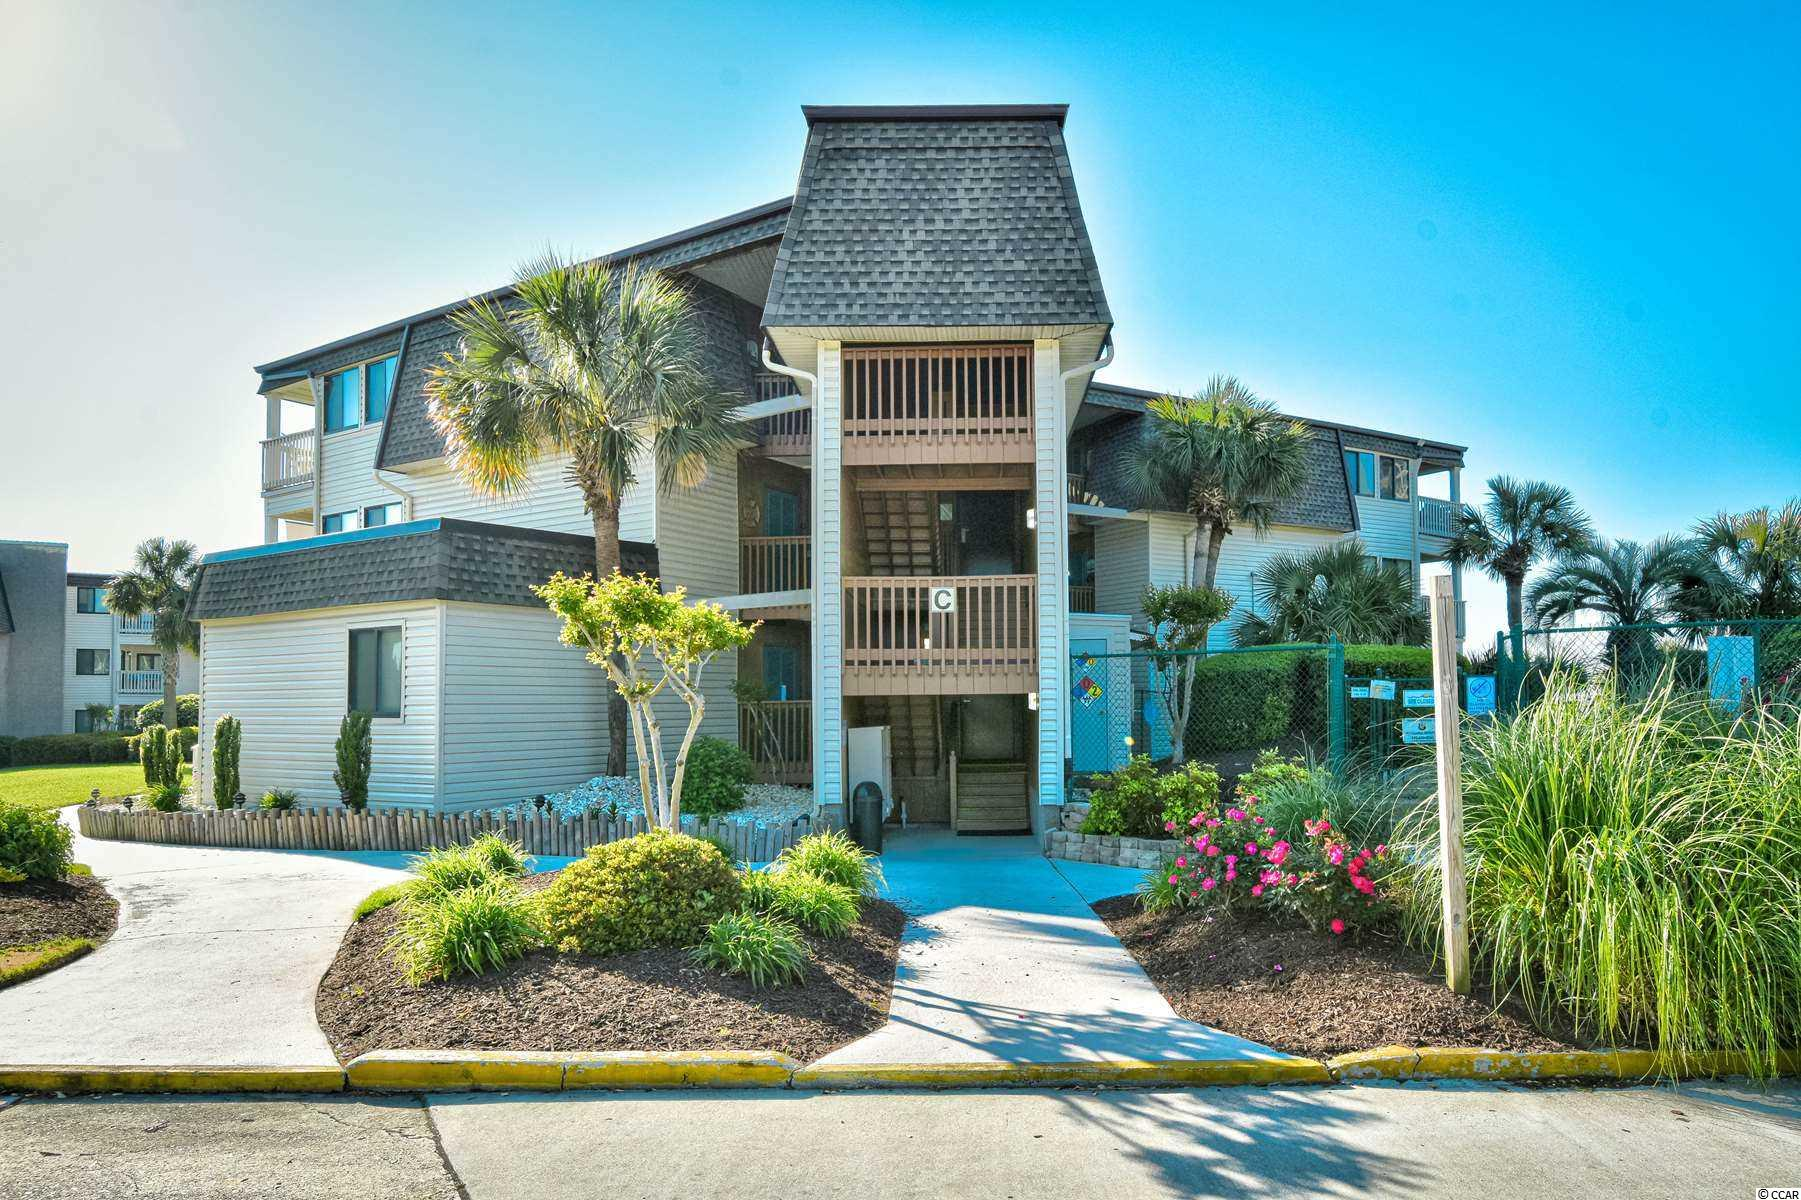 Welcome home to this fully furnished 2 bedroom, 2 bathroom 3rd floor unit in the highly sought after oceanfront community, Ocean Forest Villas. This unit features a spacious open floor plan of the main living areas, allowing room for the whole family to gather. The kitchen is equipped with all appliances, a breakfast bar, and a dining area. Each bedroom includes a ceiling fan and access to its own bathroom, while the master also includes access to your balcony with an ocean view! Enjoy the miles of ocean views from your living room or master bedroom, and spend your afternoons at the great amenities downstairs. Ocean Forest Villas offers 2 community pools, an oceanfront sun deck with picnic and grilling areas, private beach access and more. Perfectly situated in the heart of Myrtle Beach, close to all of the Grand Strand's finest dining, shopping, golf, and entertainment attractions. Whether you are looking for a second home on the beach or your next investment, you won't want to miss this. Schedule your showing today!